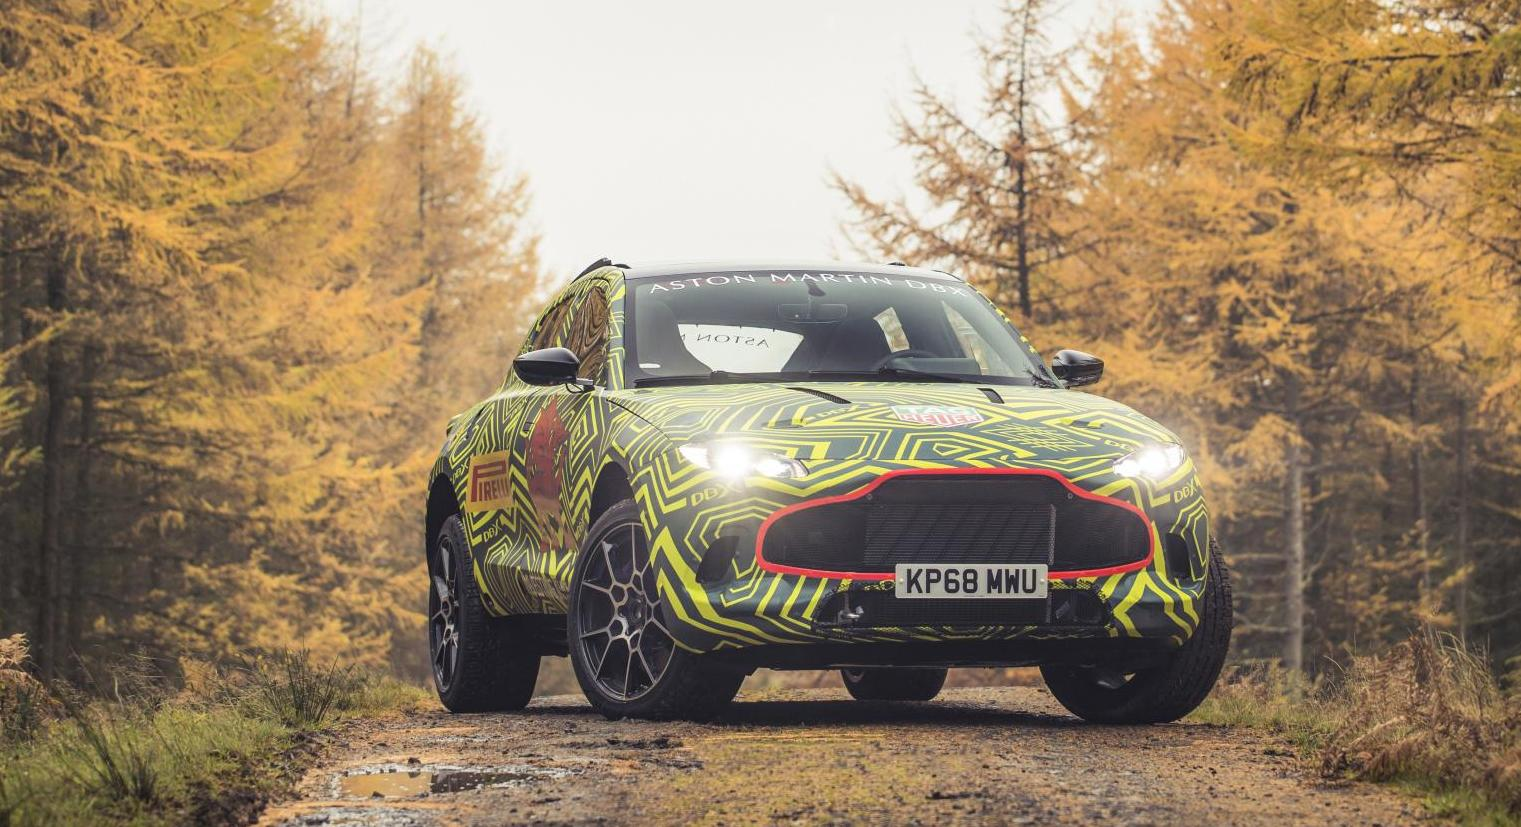 Aston Martin DBX SUV previewed before 2019 launch, will lock horns with the Lamborghini Urus